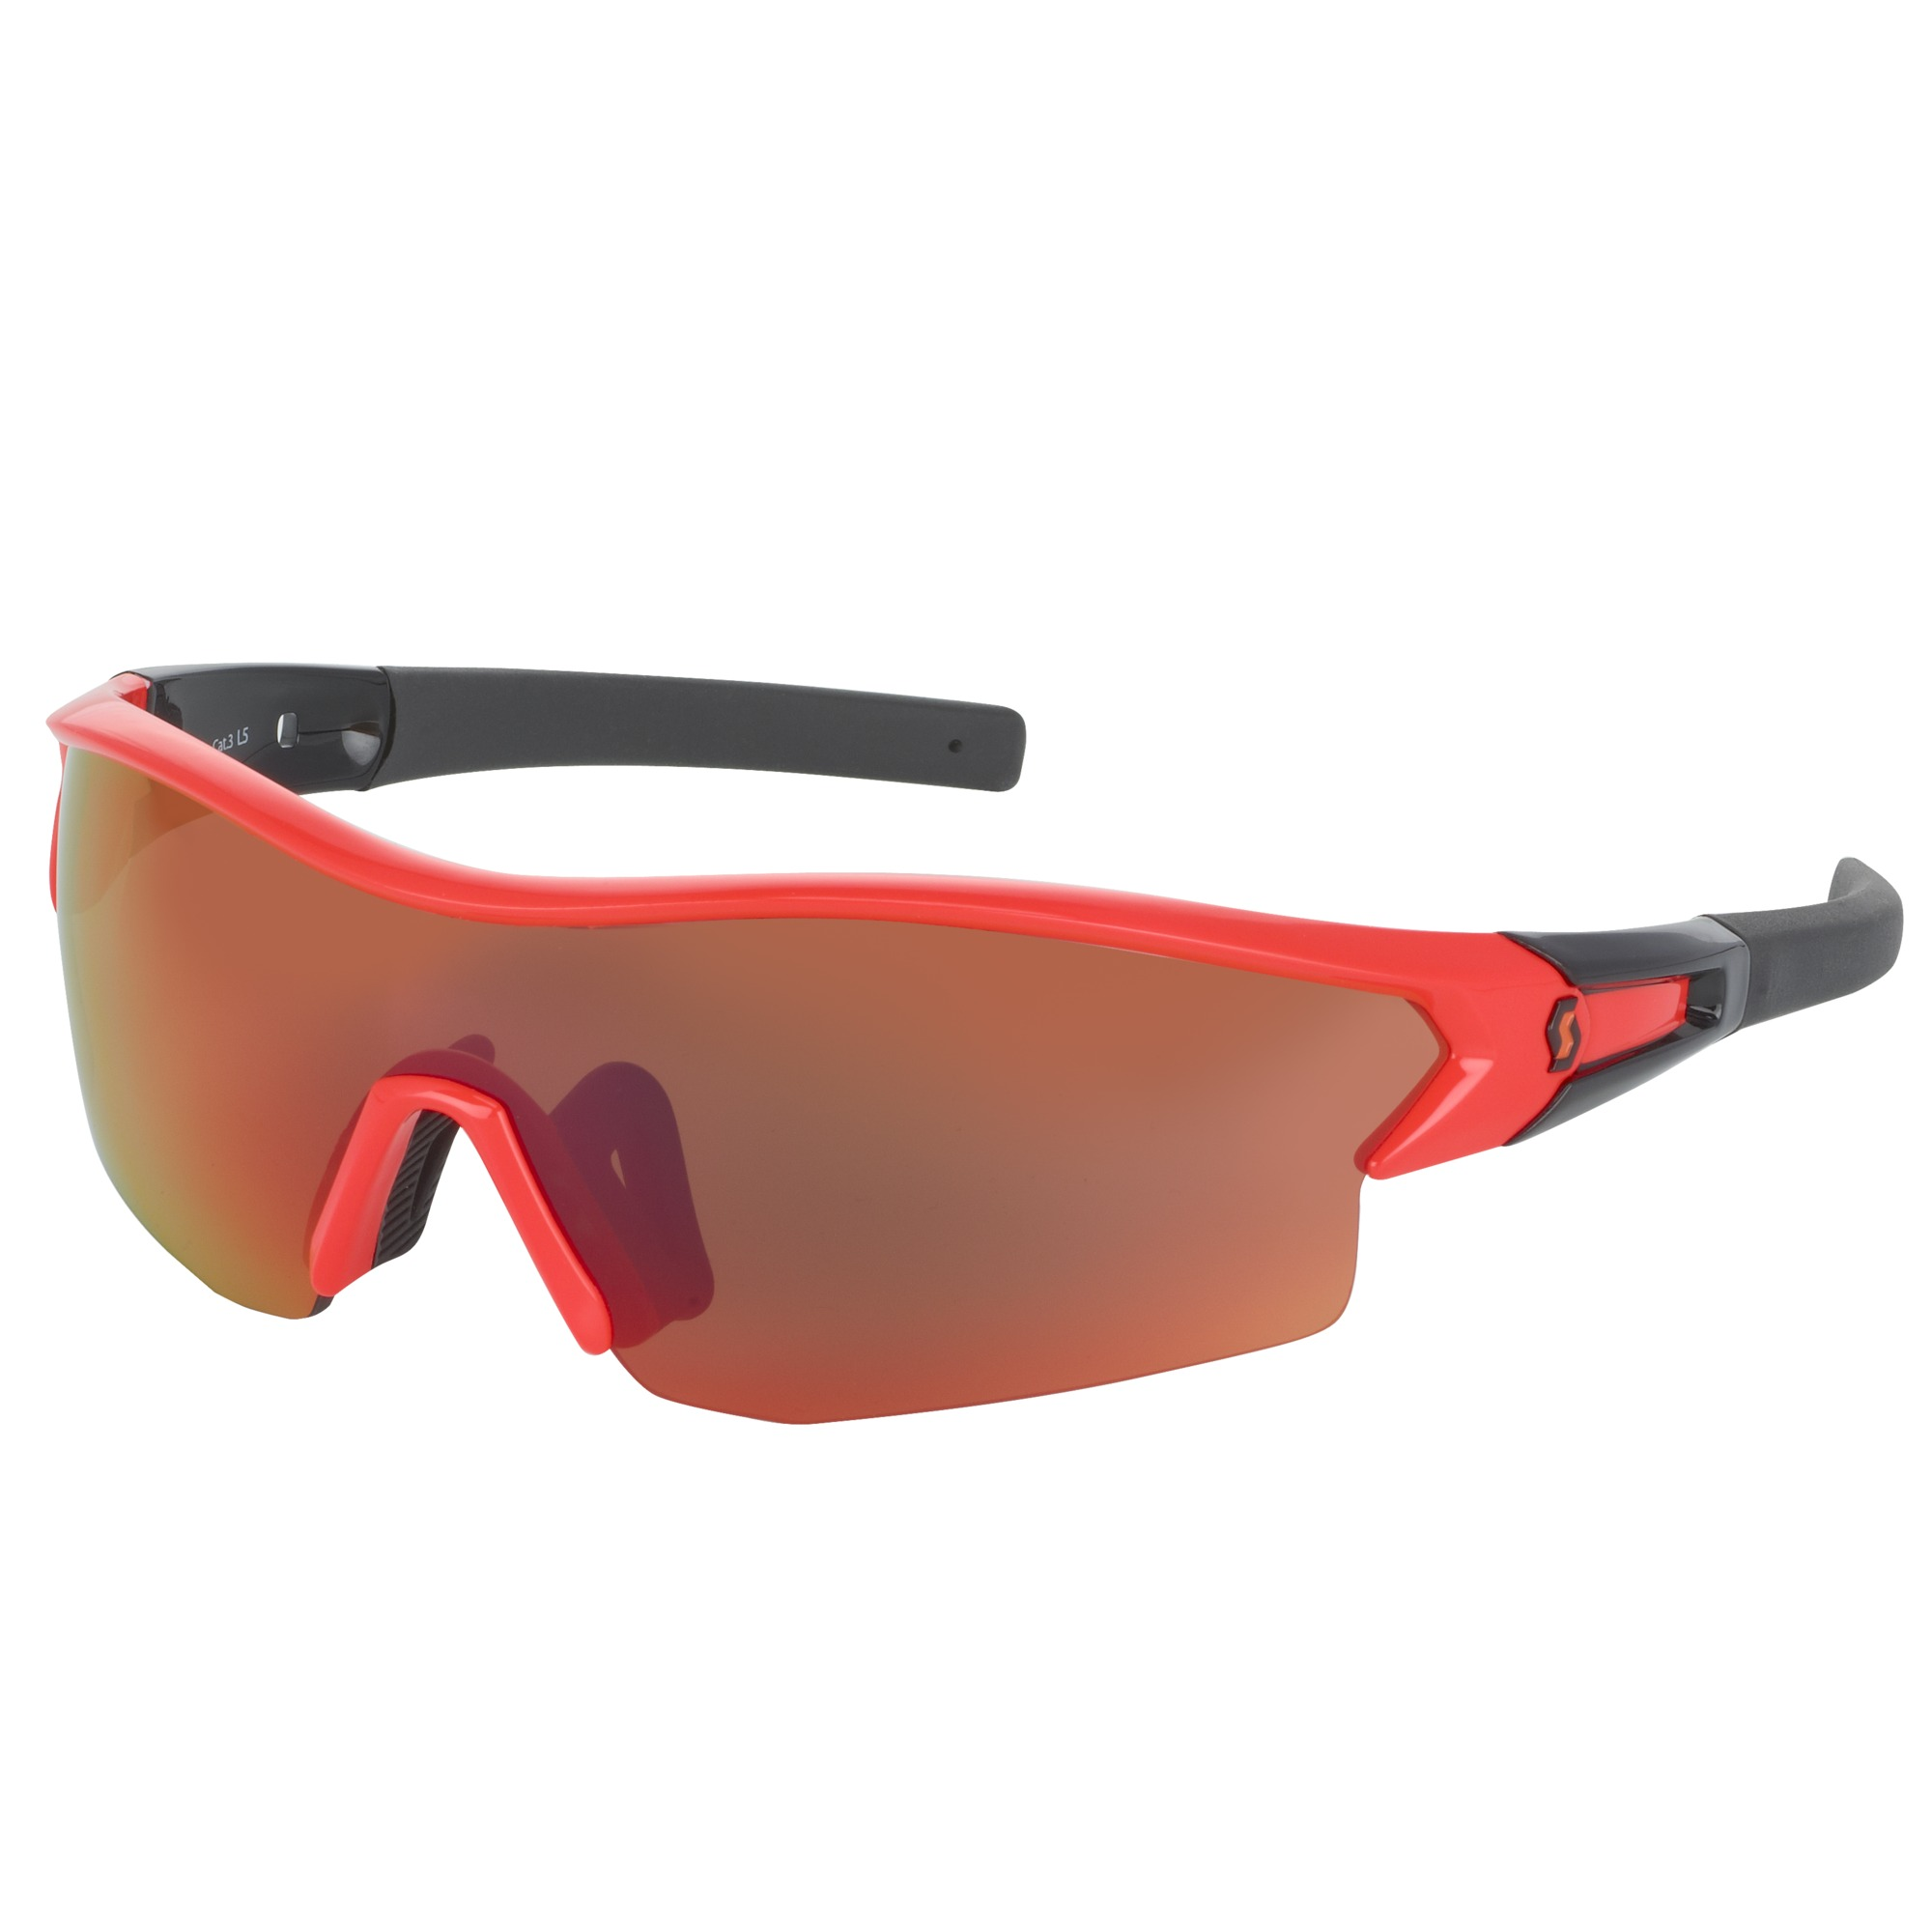 OCCHIALE SPORTIVO SCOTT LEAP SUNGLASSES 238999 NEON RED GLOSSY BLACK.jpg